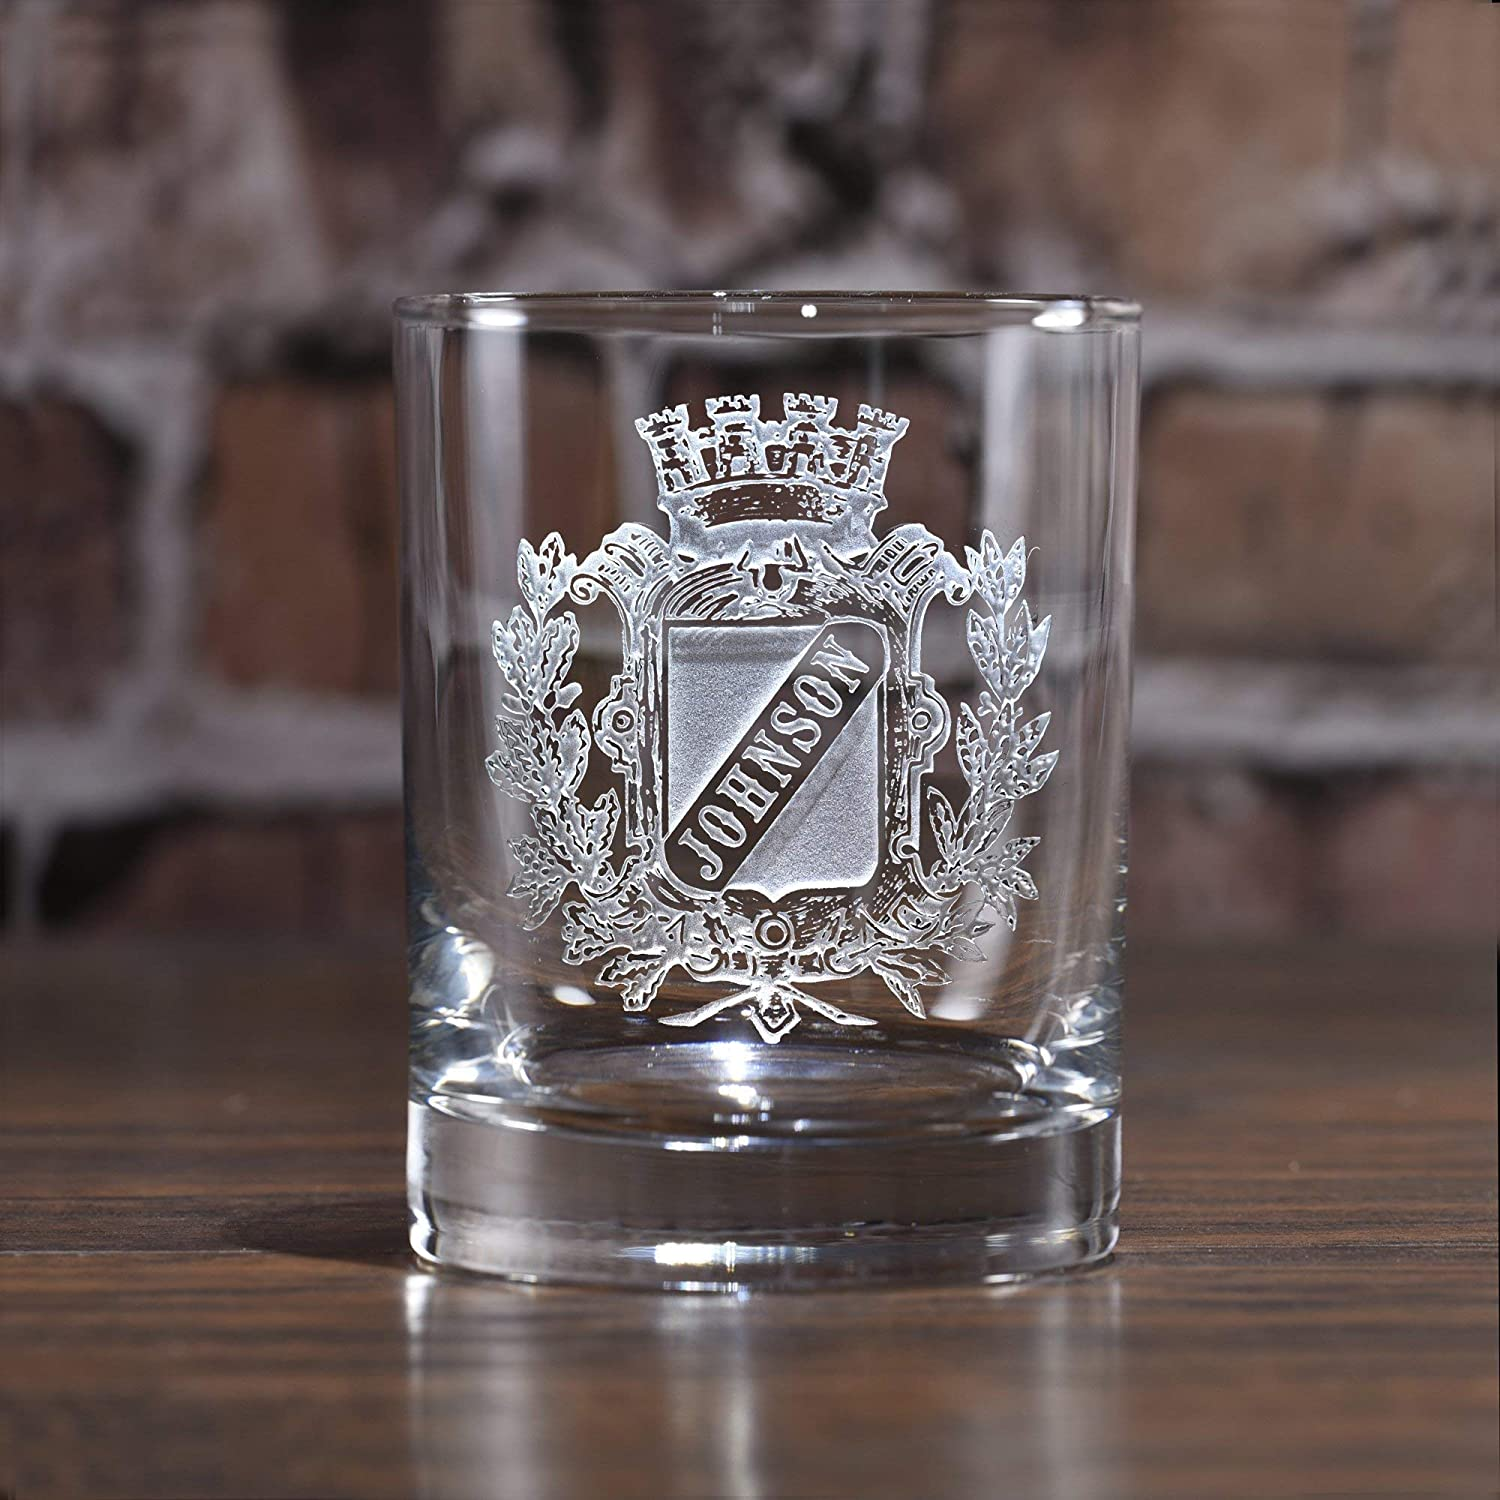 Engraved Whiskey, Scotch, Bourbon Glasses, Coat of Arms, Family Crest - One Glass - (crest)